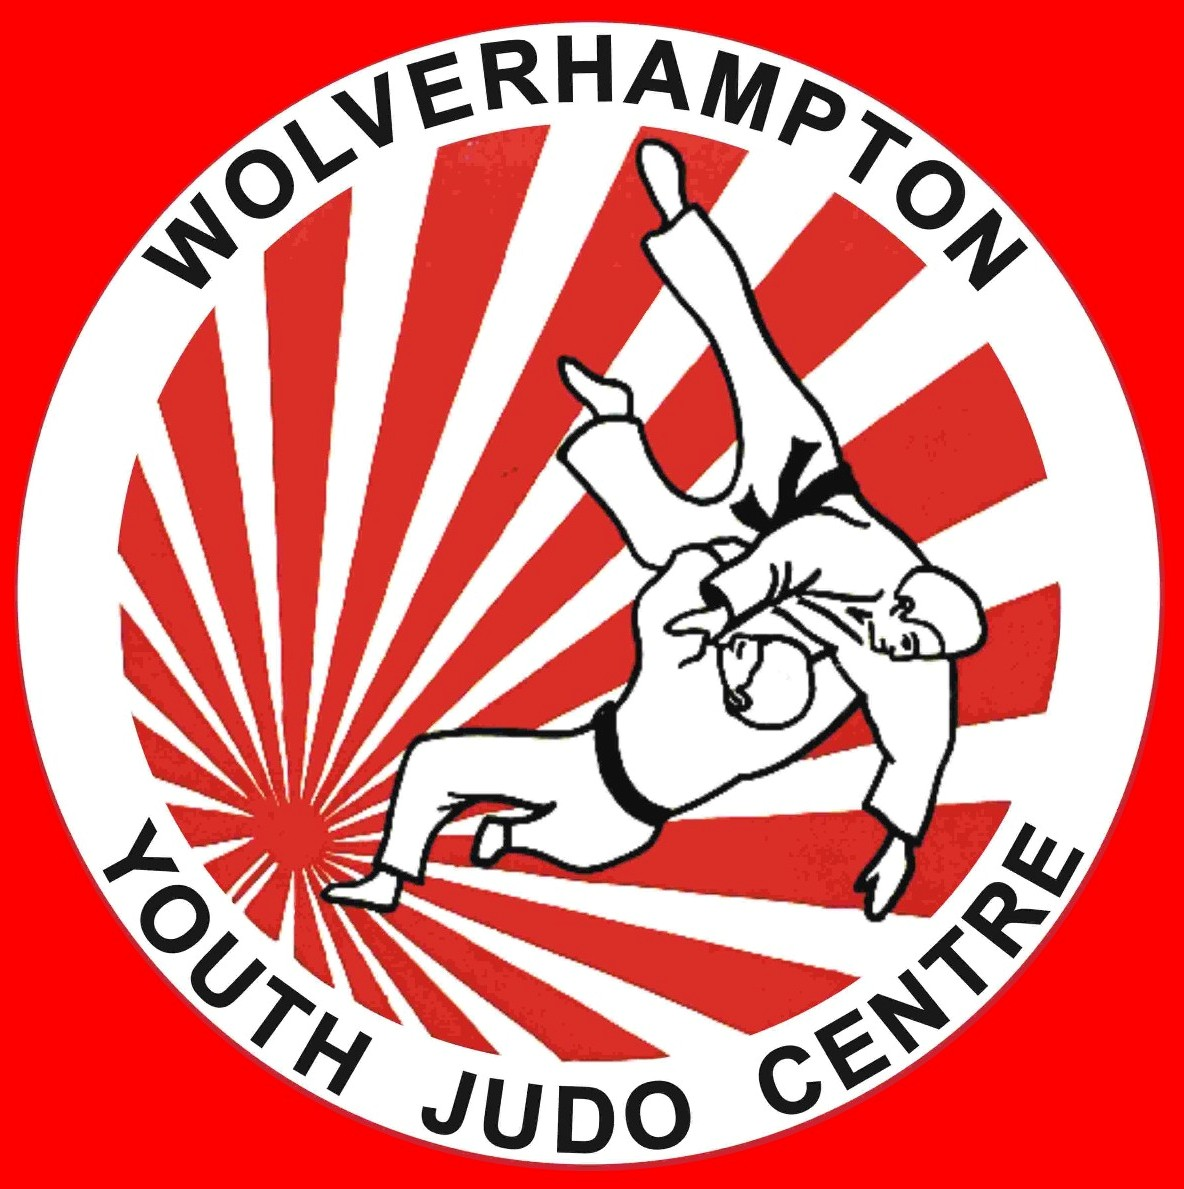 CLICK HERE TO GO TO THE WEB SITE OF WOLVERHAMPTON YOUTH JUDO CENTRE